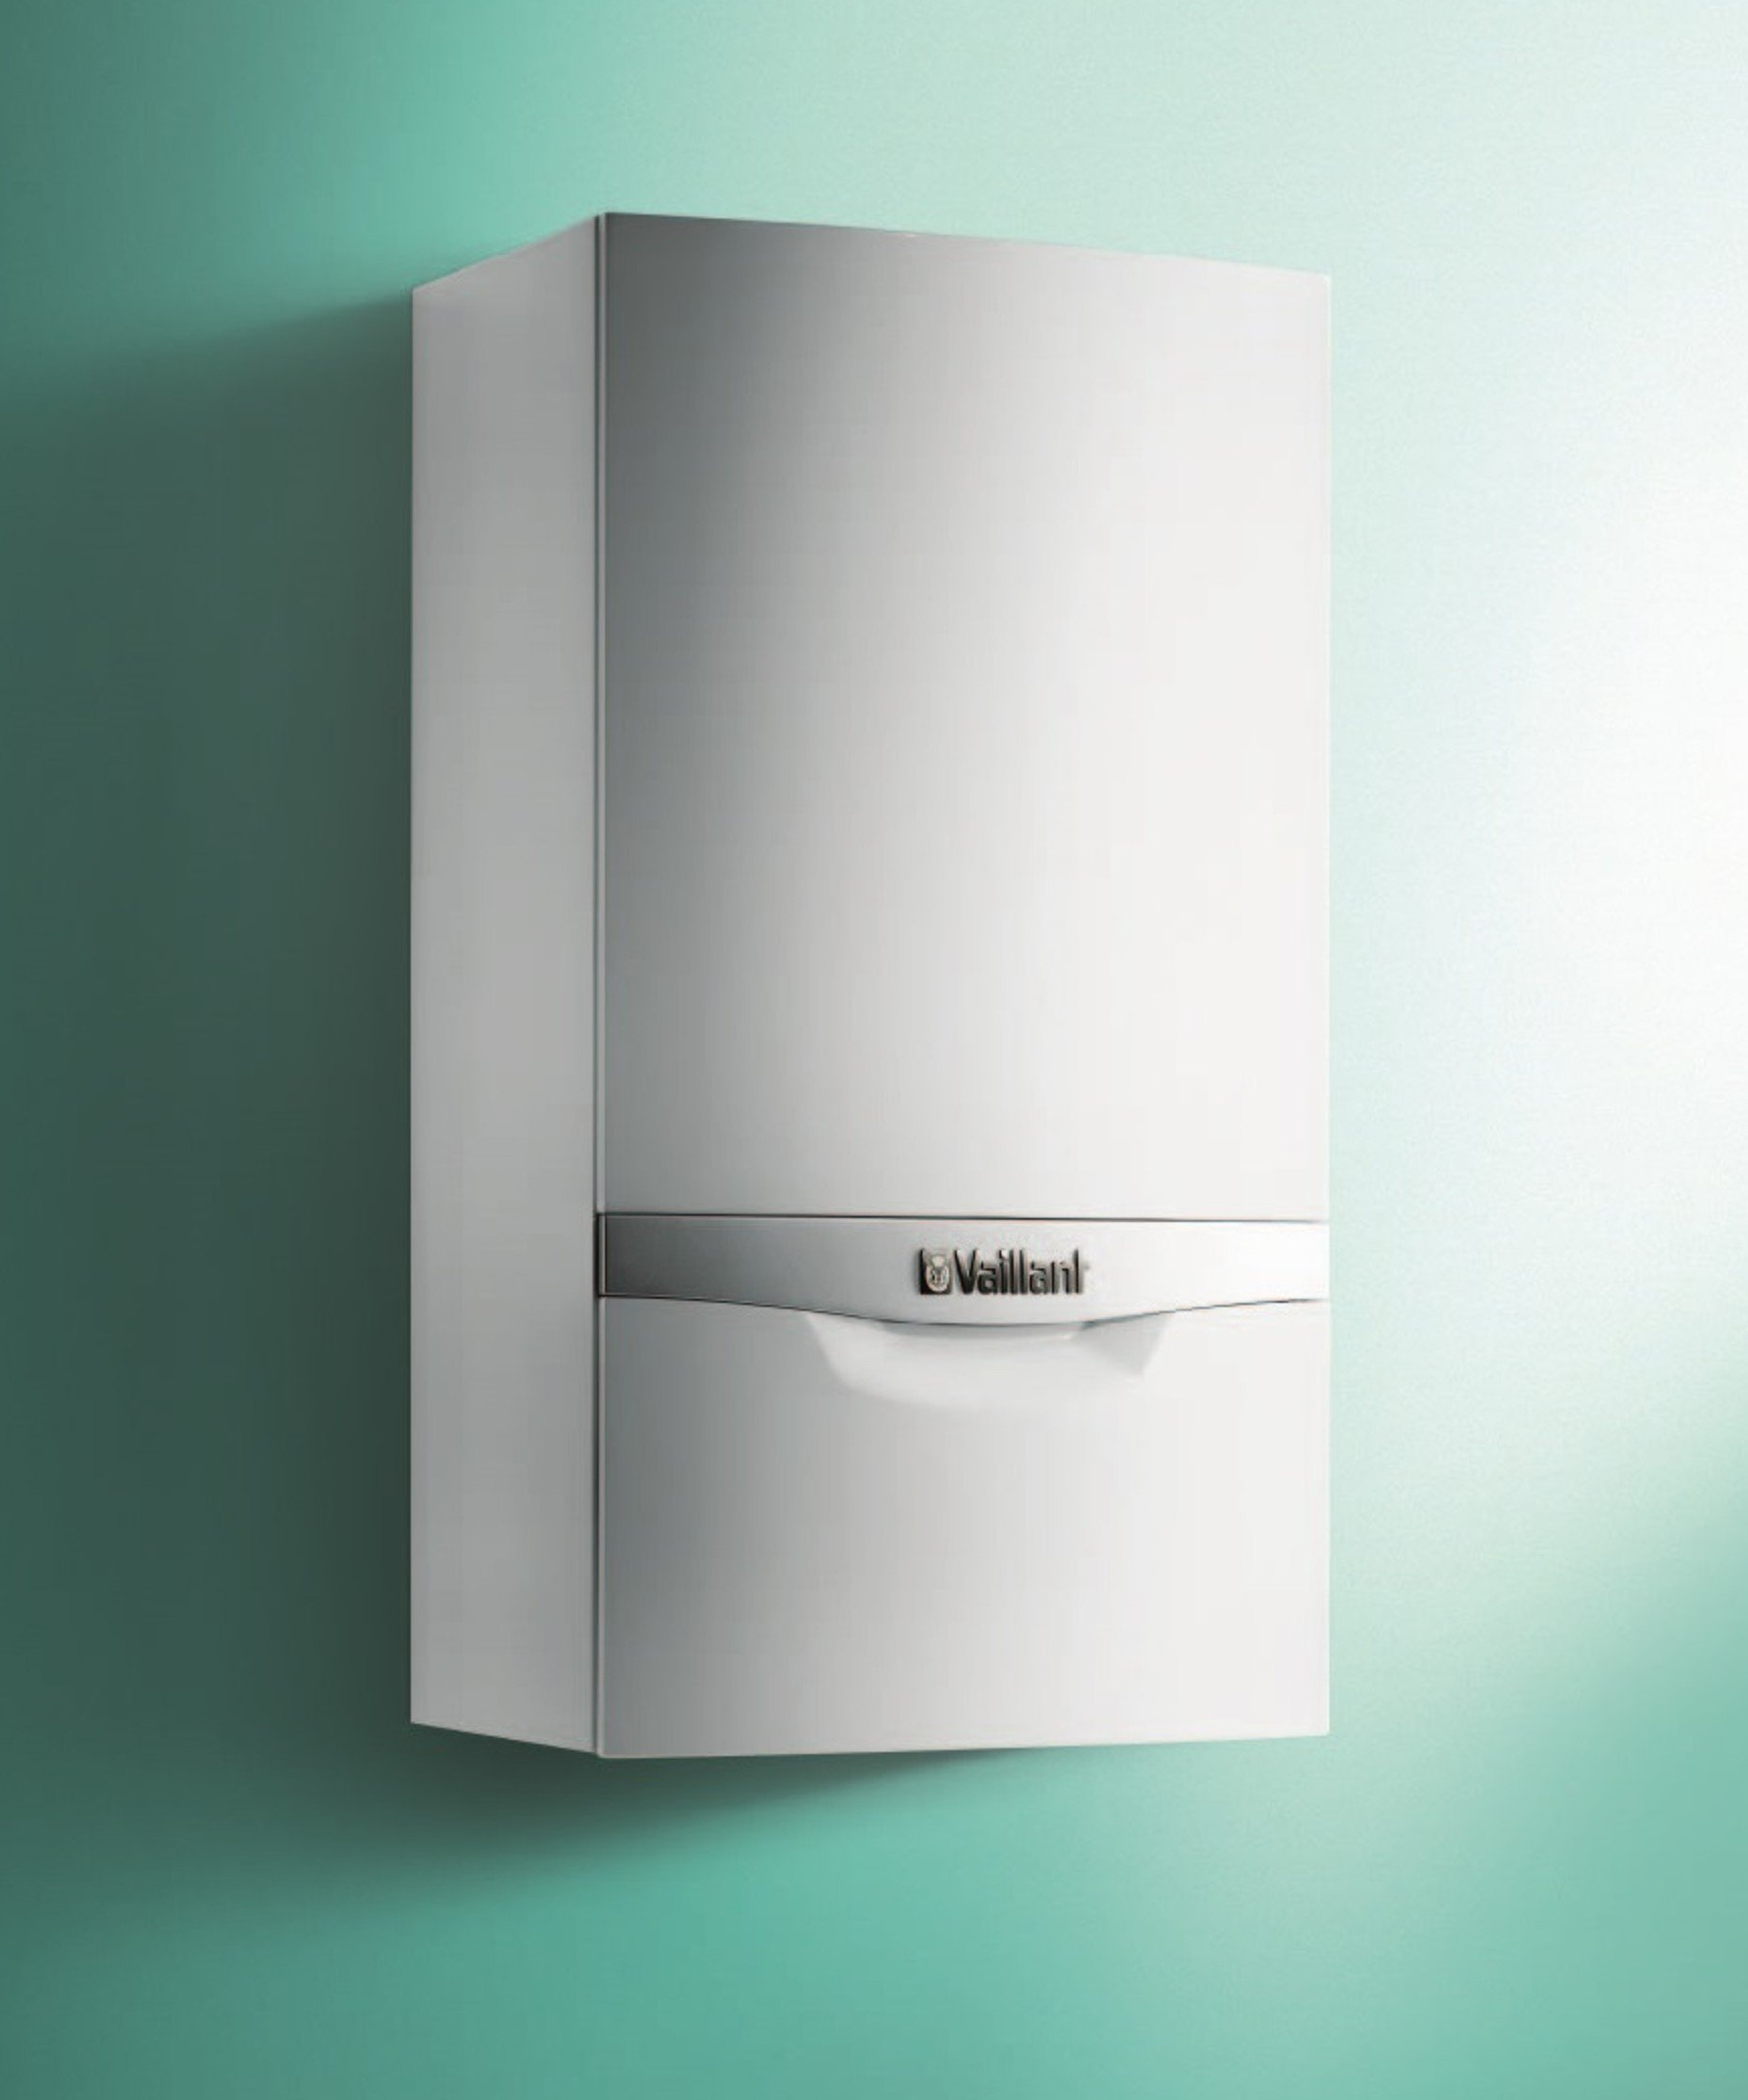 VAILLANT ATMOTEC PLUS VU 280-5 10003965